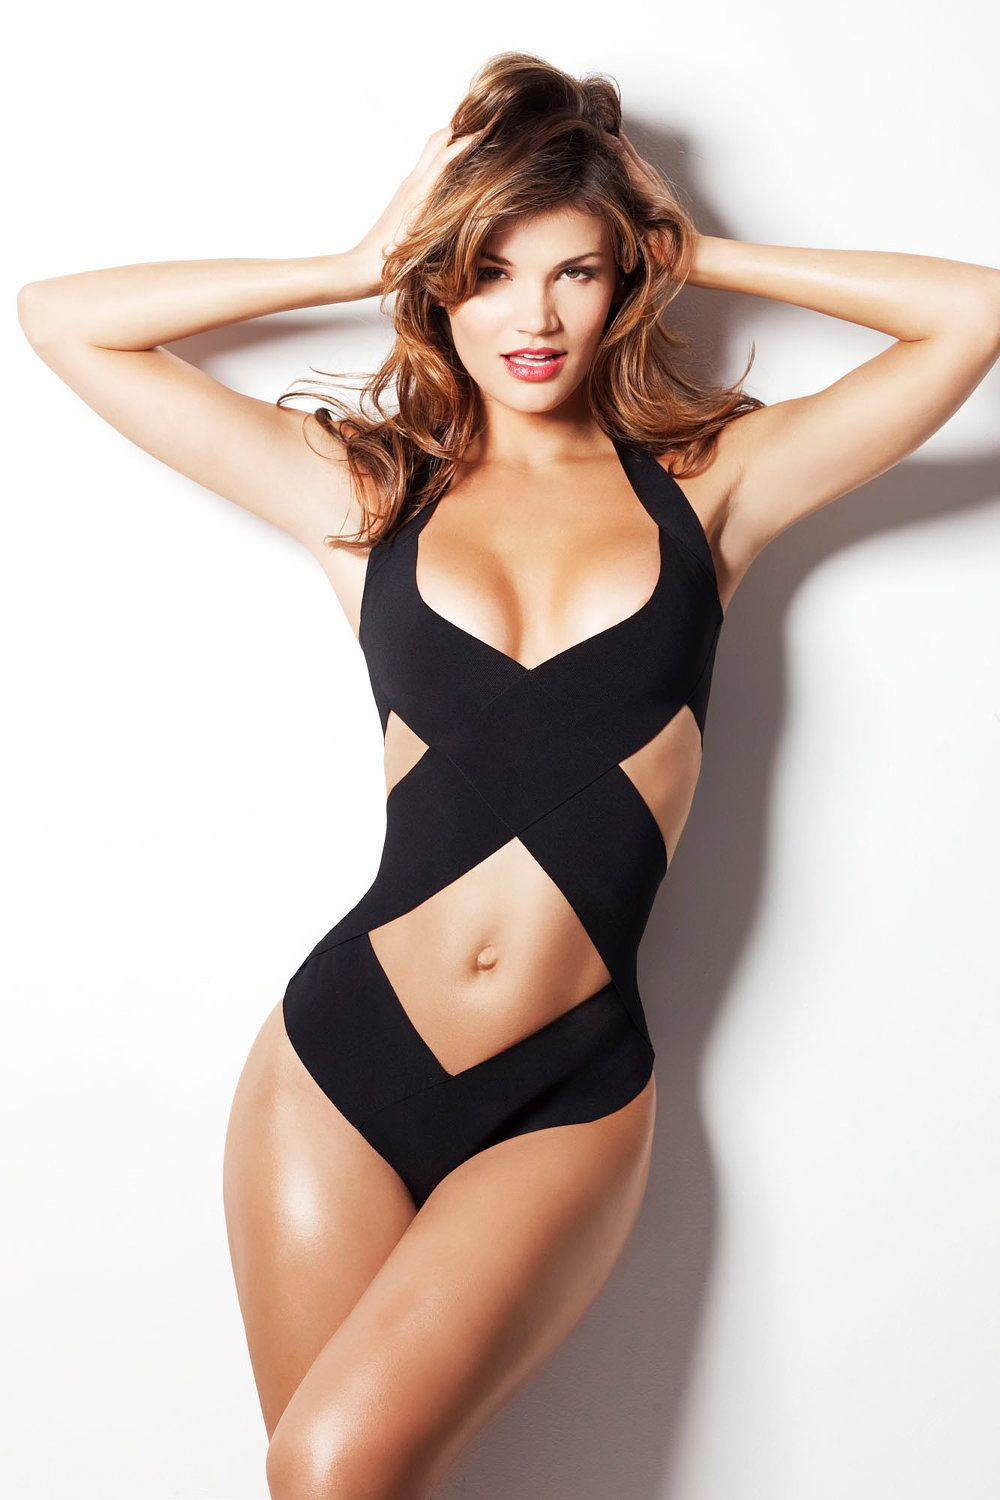 e29964dd8ef Bandage swimsuit  bathing suit as seen in GQ